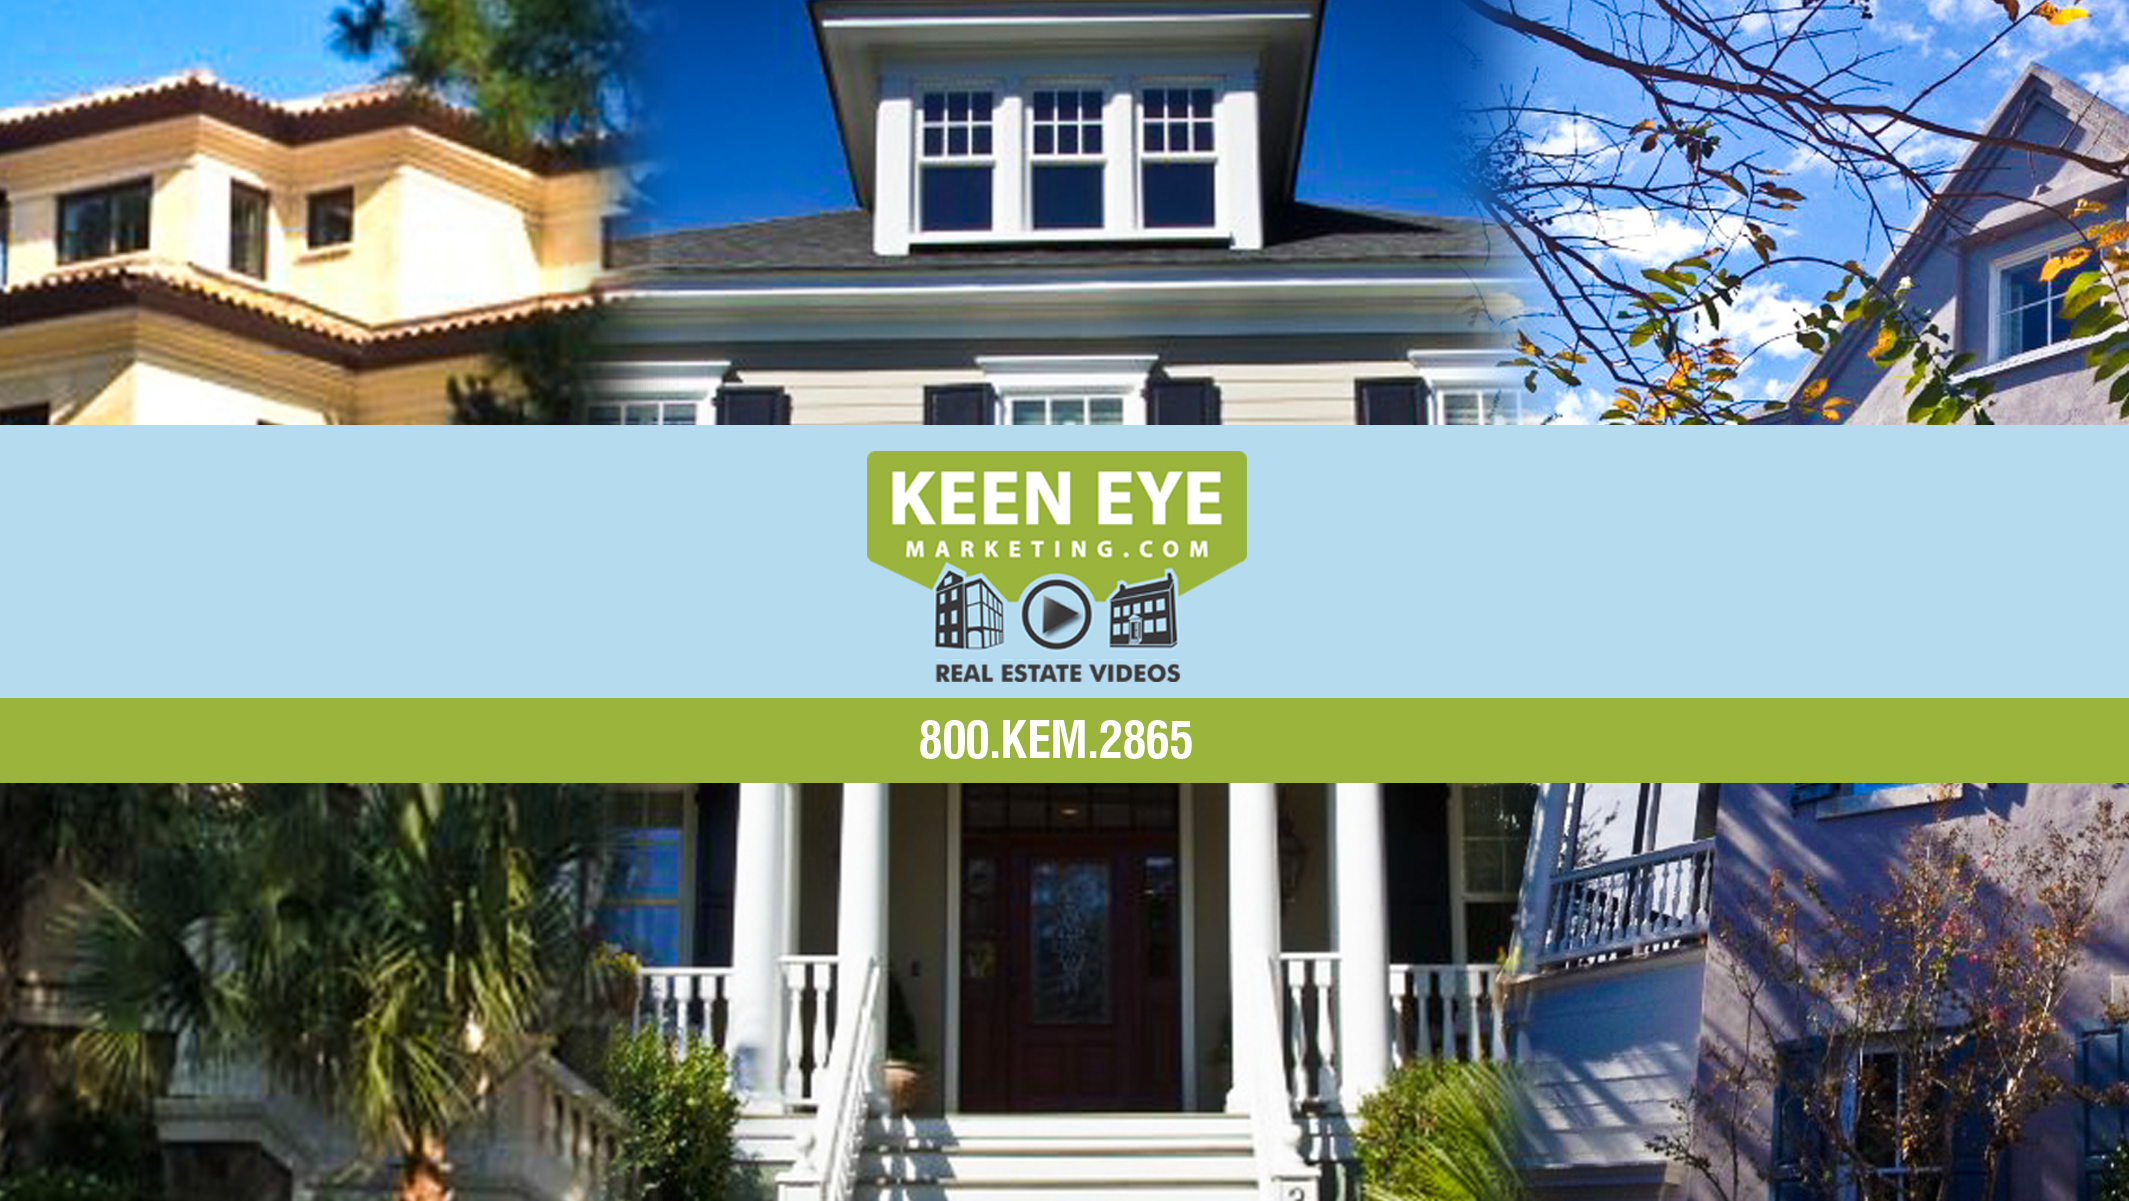 High Quality Real Estate Videos from Keen Eye Marketing